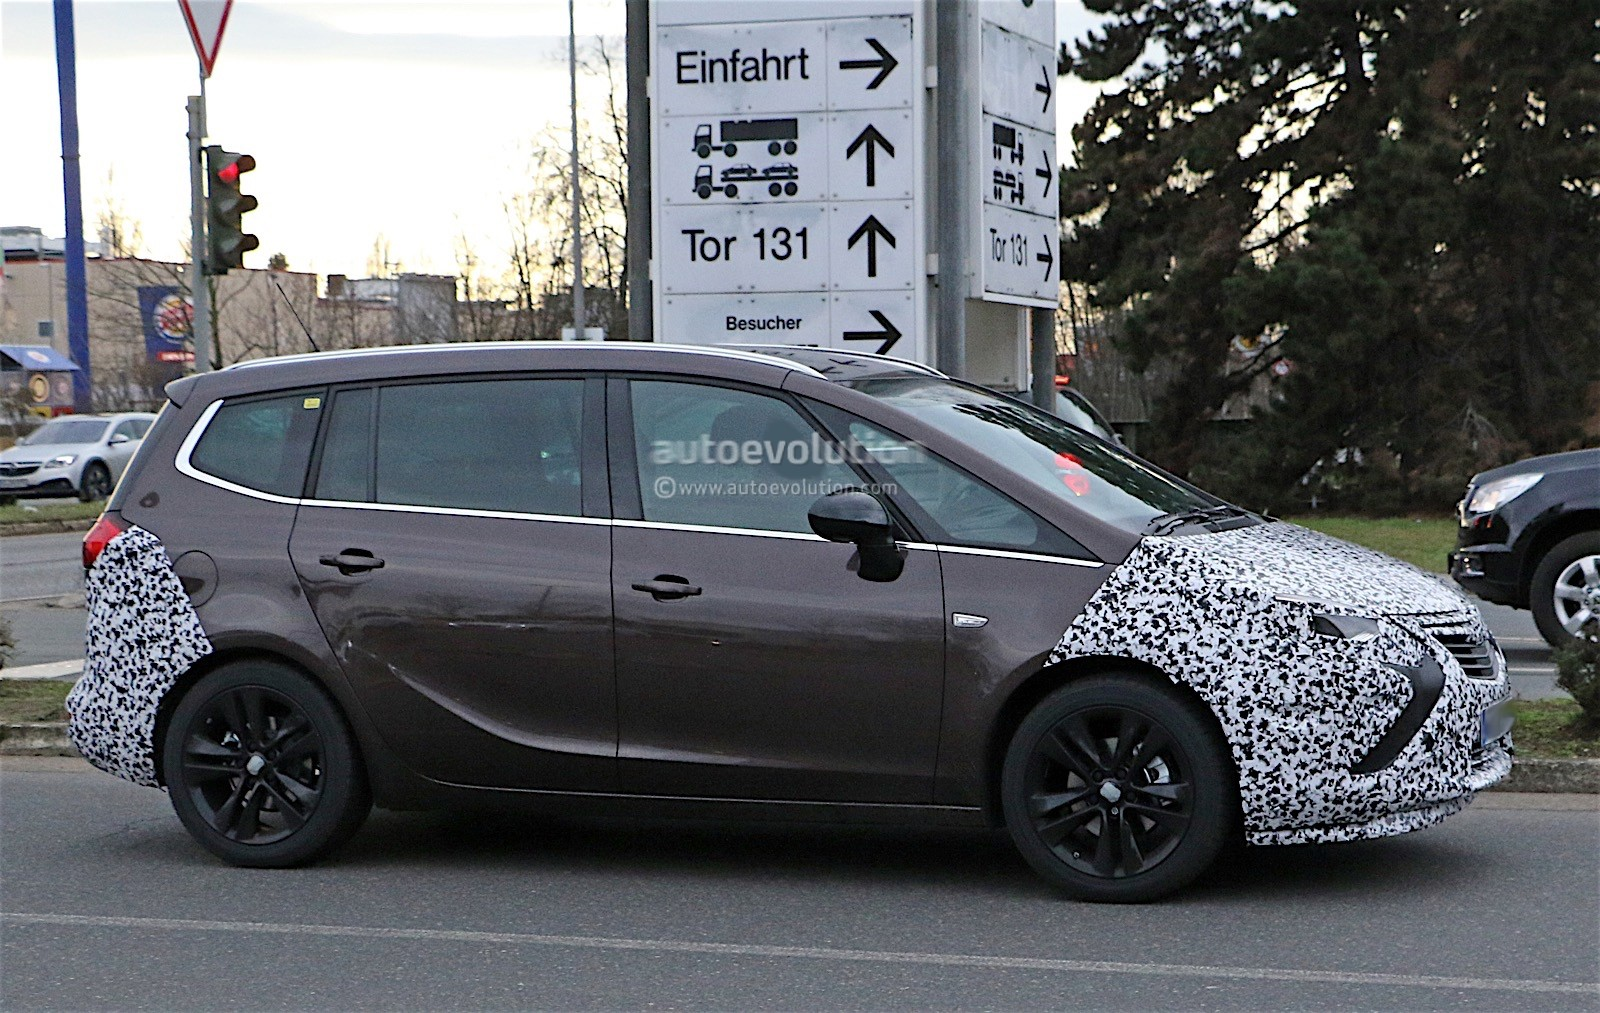 opel zafira facelift spied with revealing camouflage. Black Bedroom Furniture Sets. Home Design Ideas